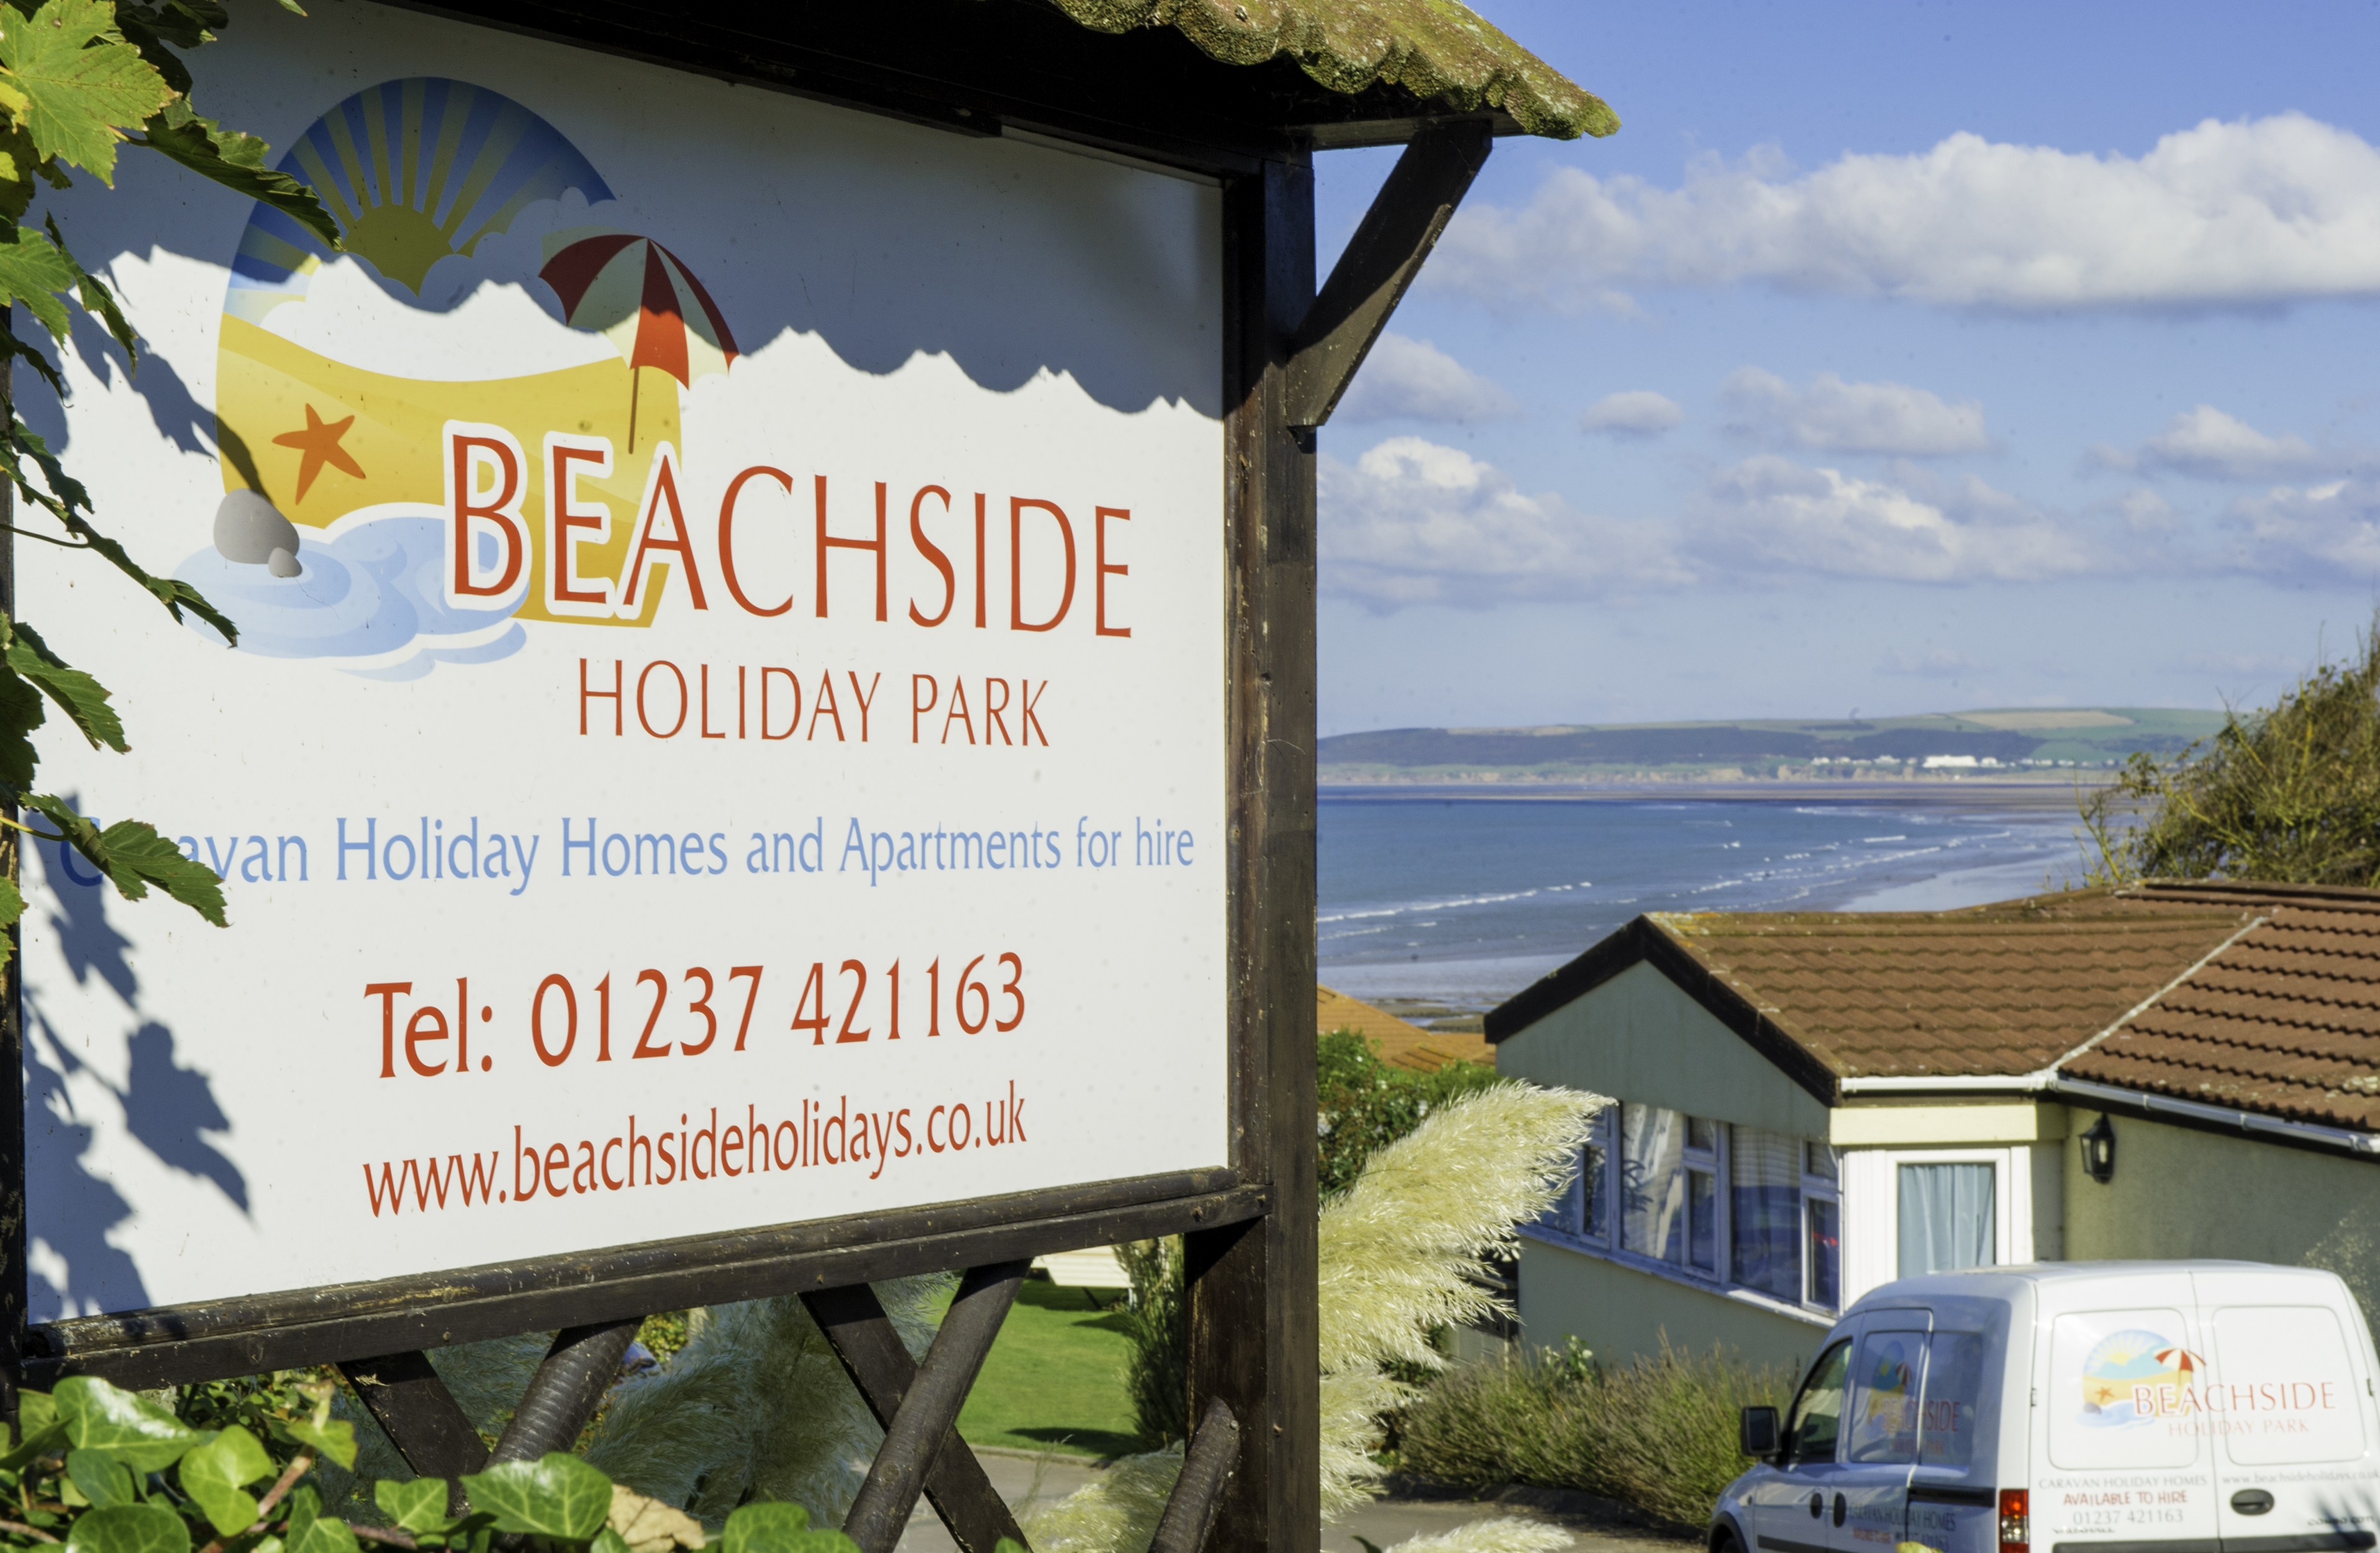 Beachside Holiday Park in Westward Ho!